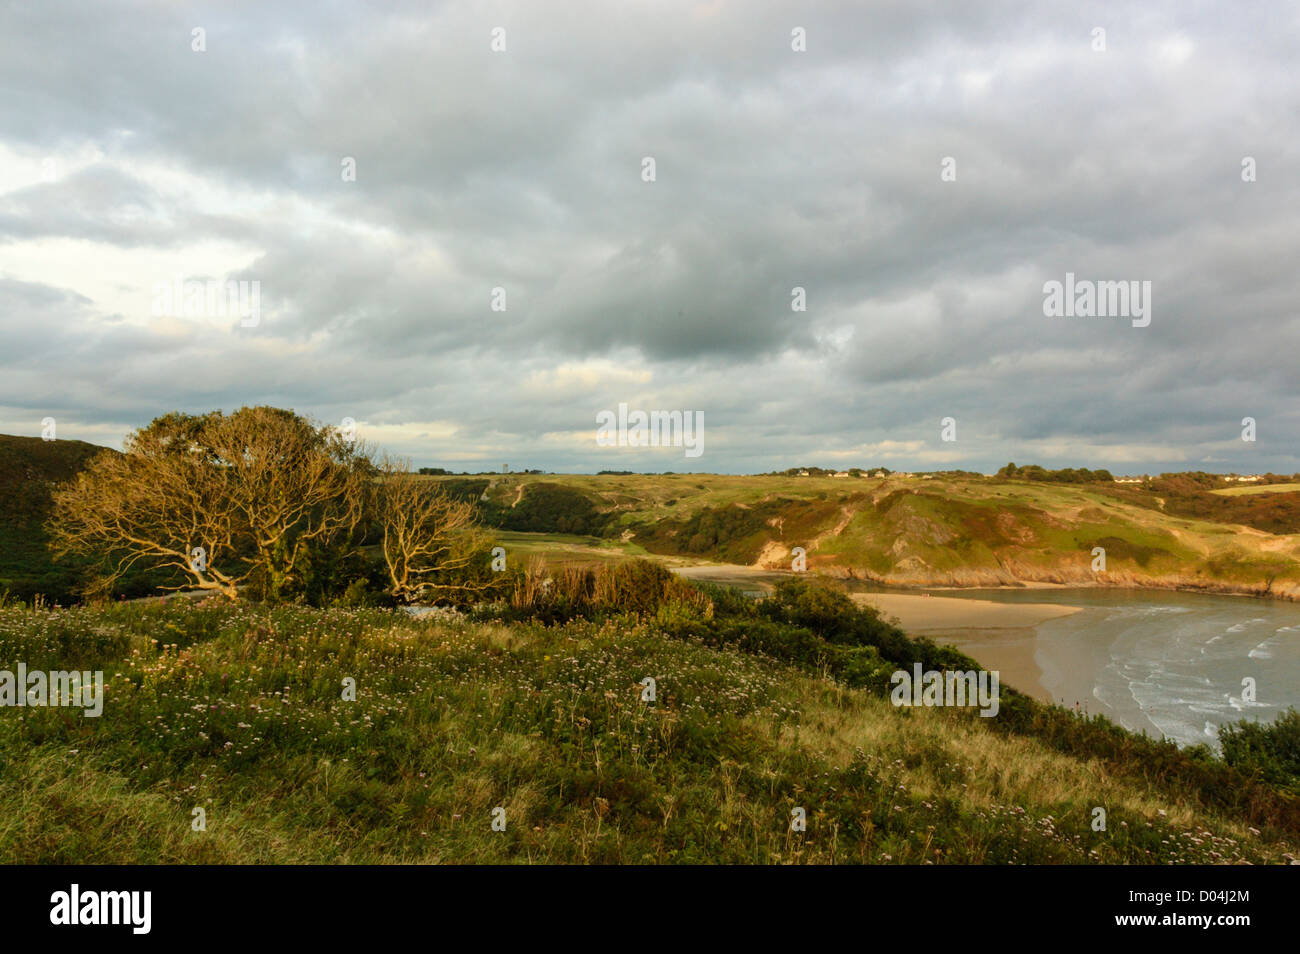 Looking Eastwards over the beach at Three Cliffs Bay in Gower, the view from Penmaen Burrows. - Stock Image